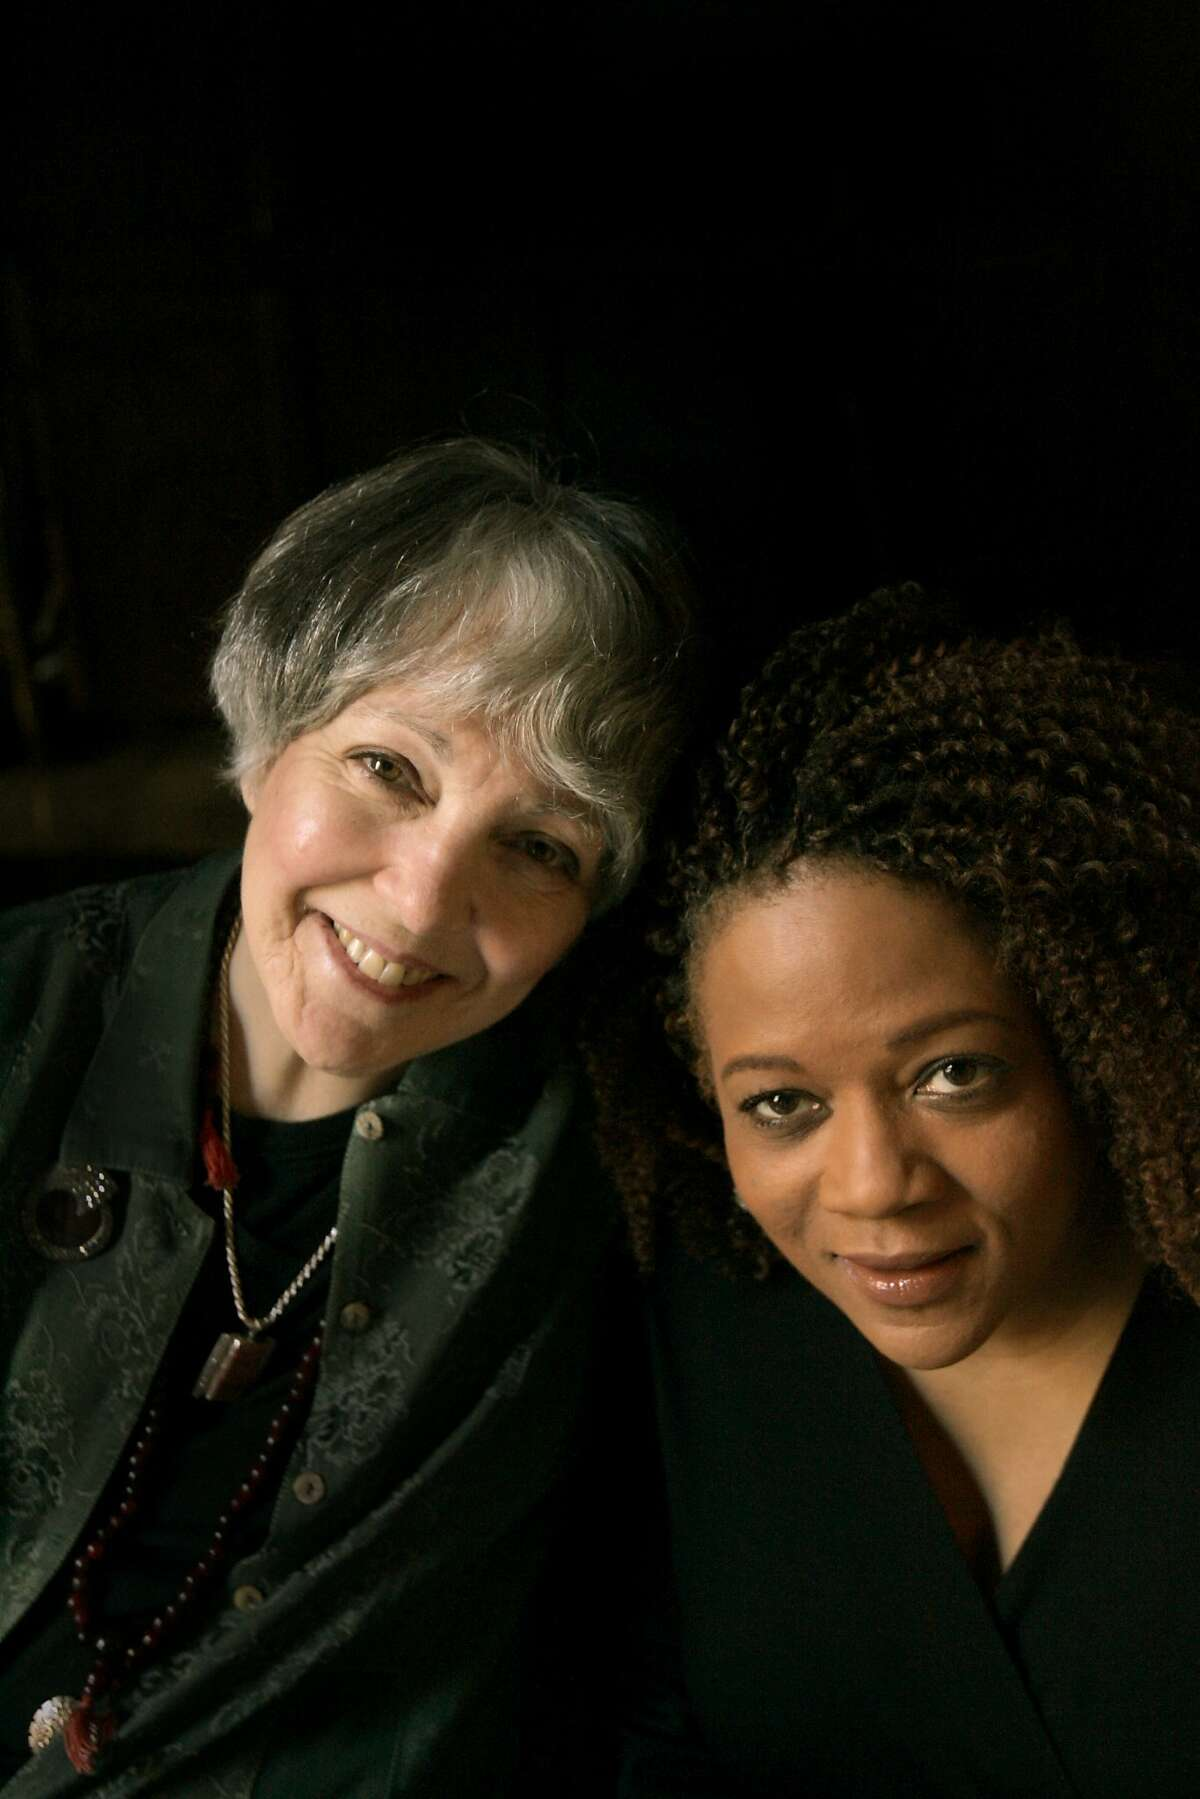 Photo shoot at the Empire Plush Room, in SF, with with jazz singers Wesla Whitfield and Paula West.